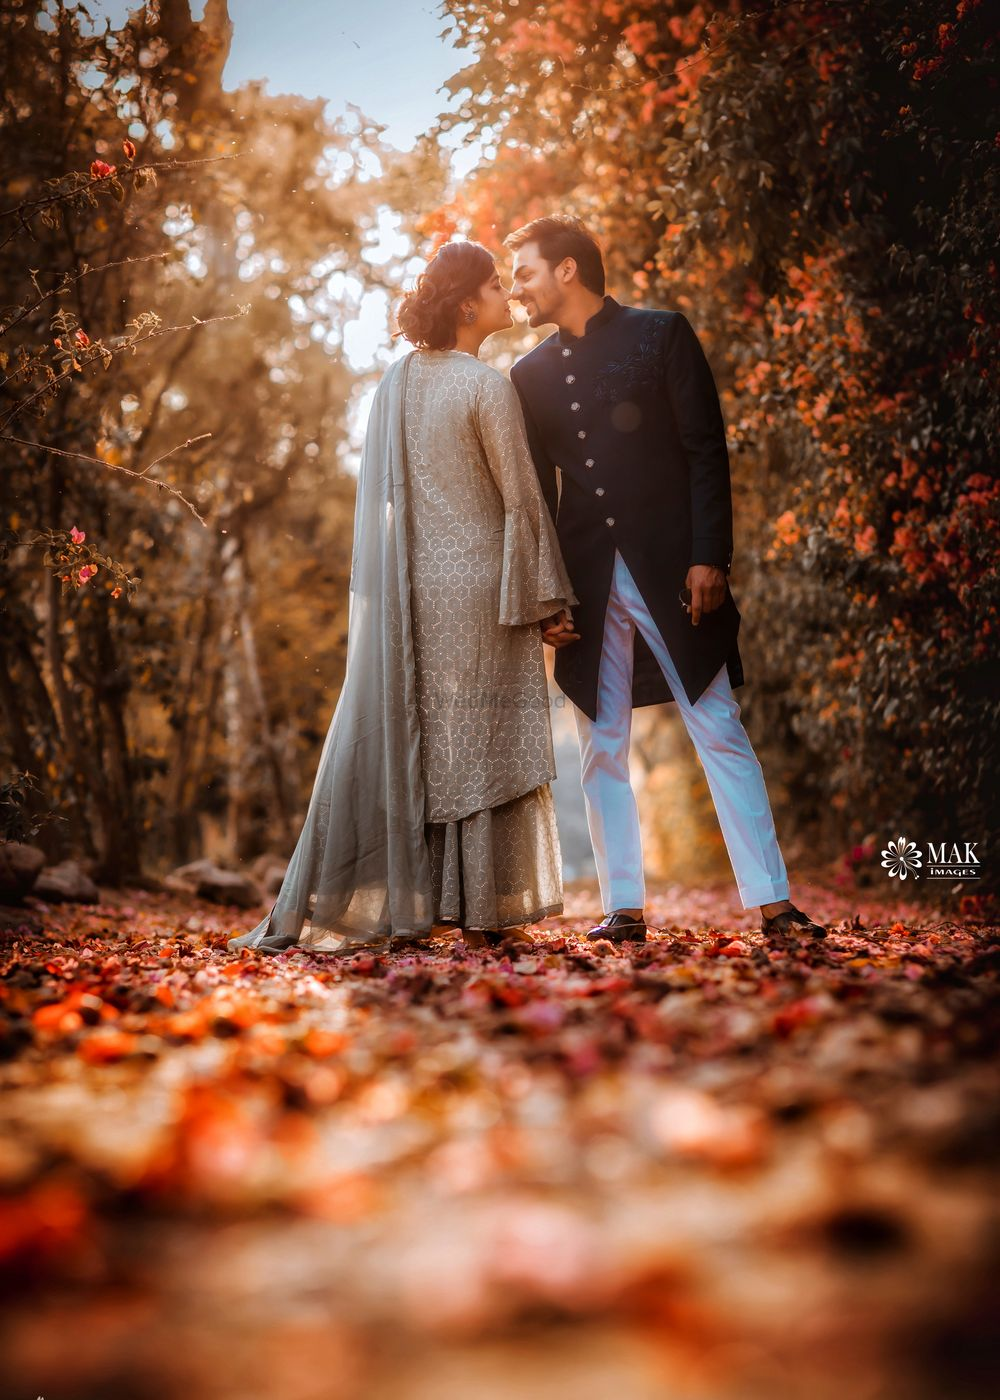 Photo From SAHIL + SNEHA - By Mak Images (Luxury Wedding Photography)